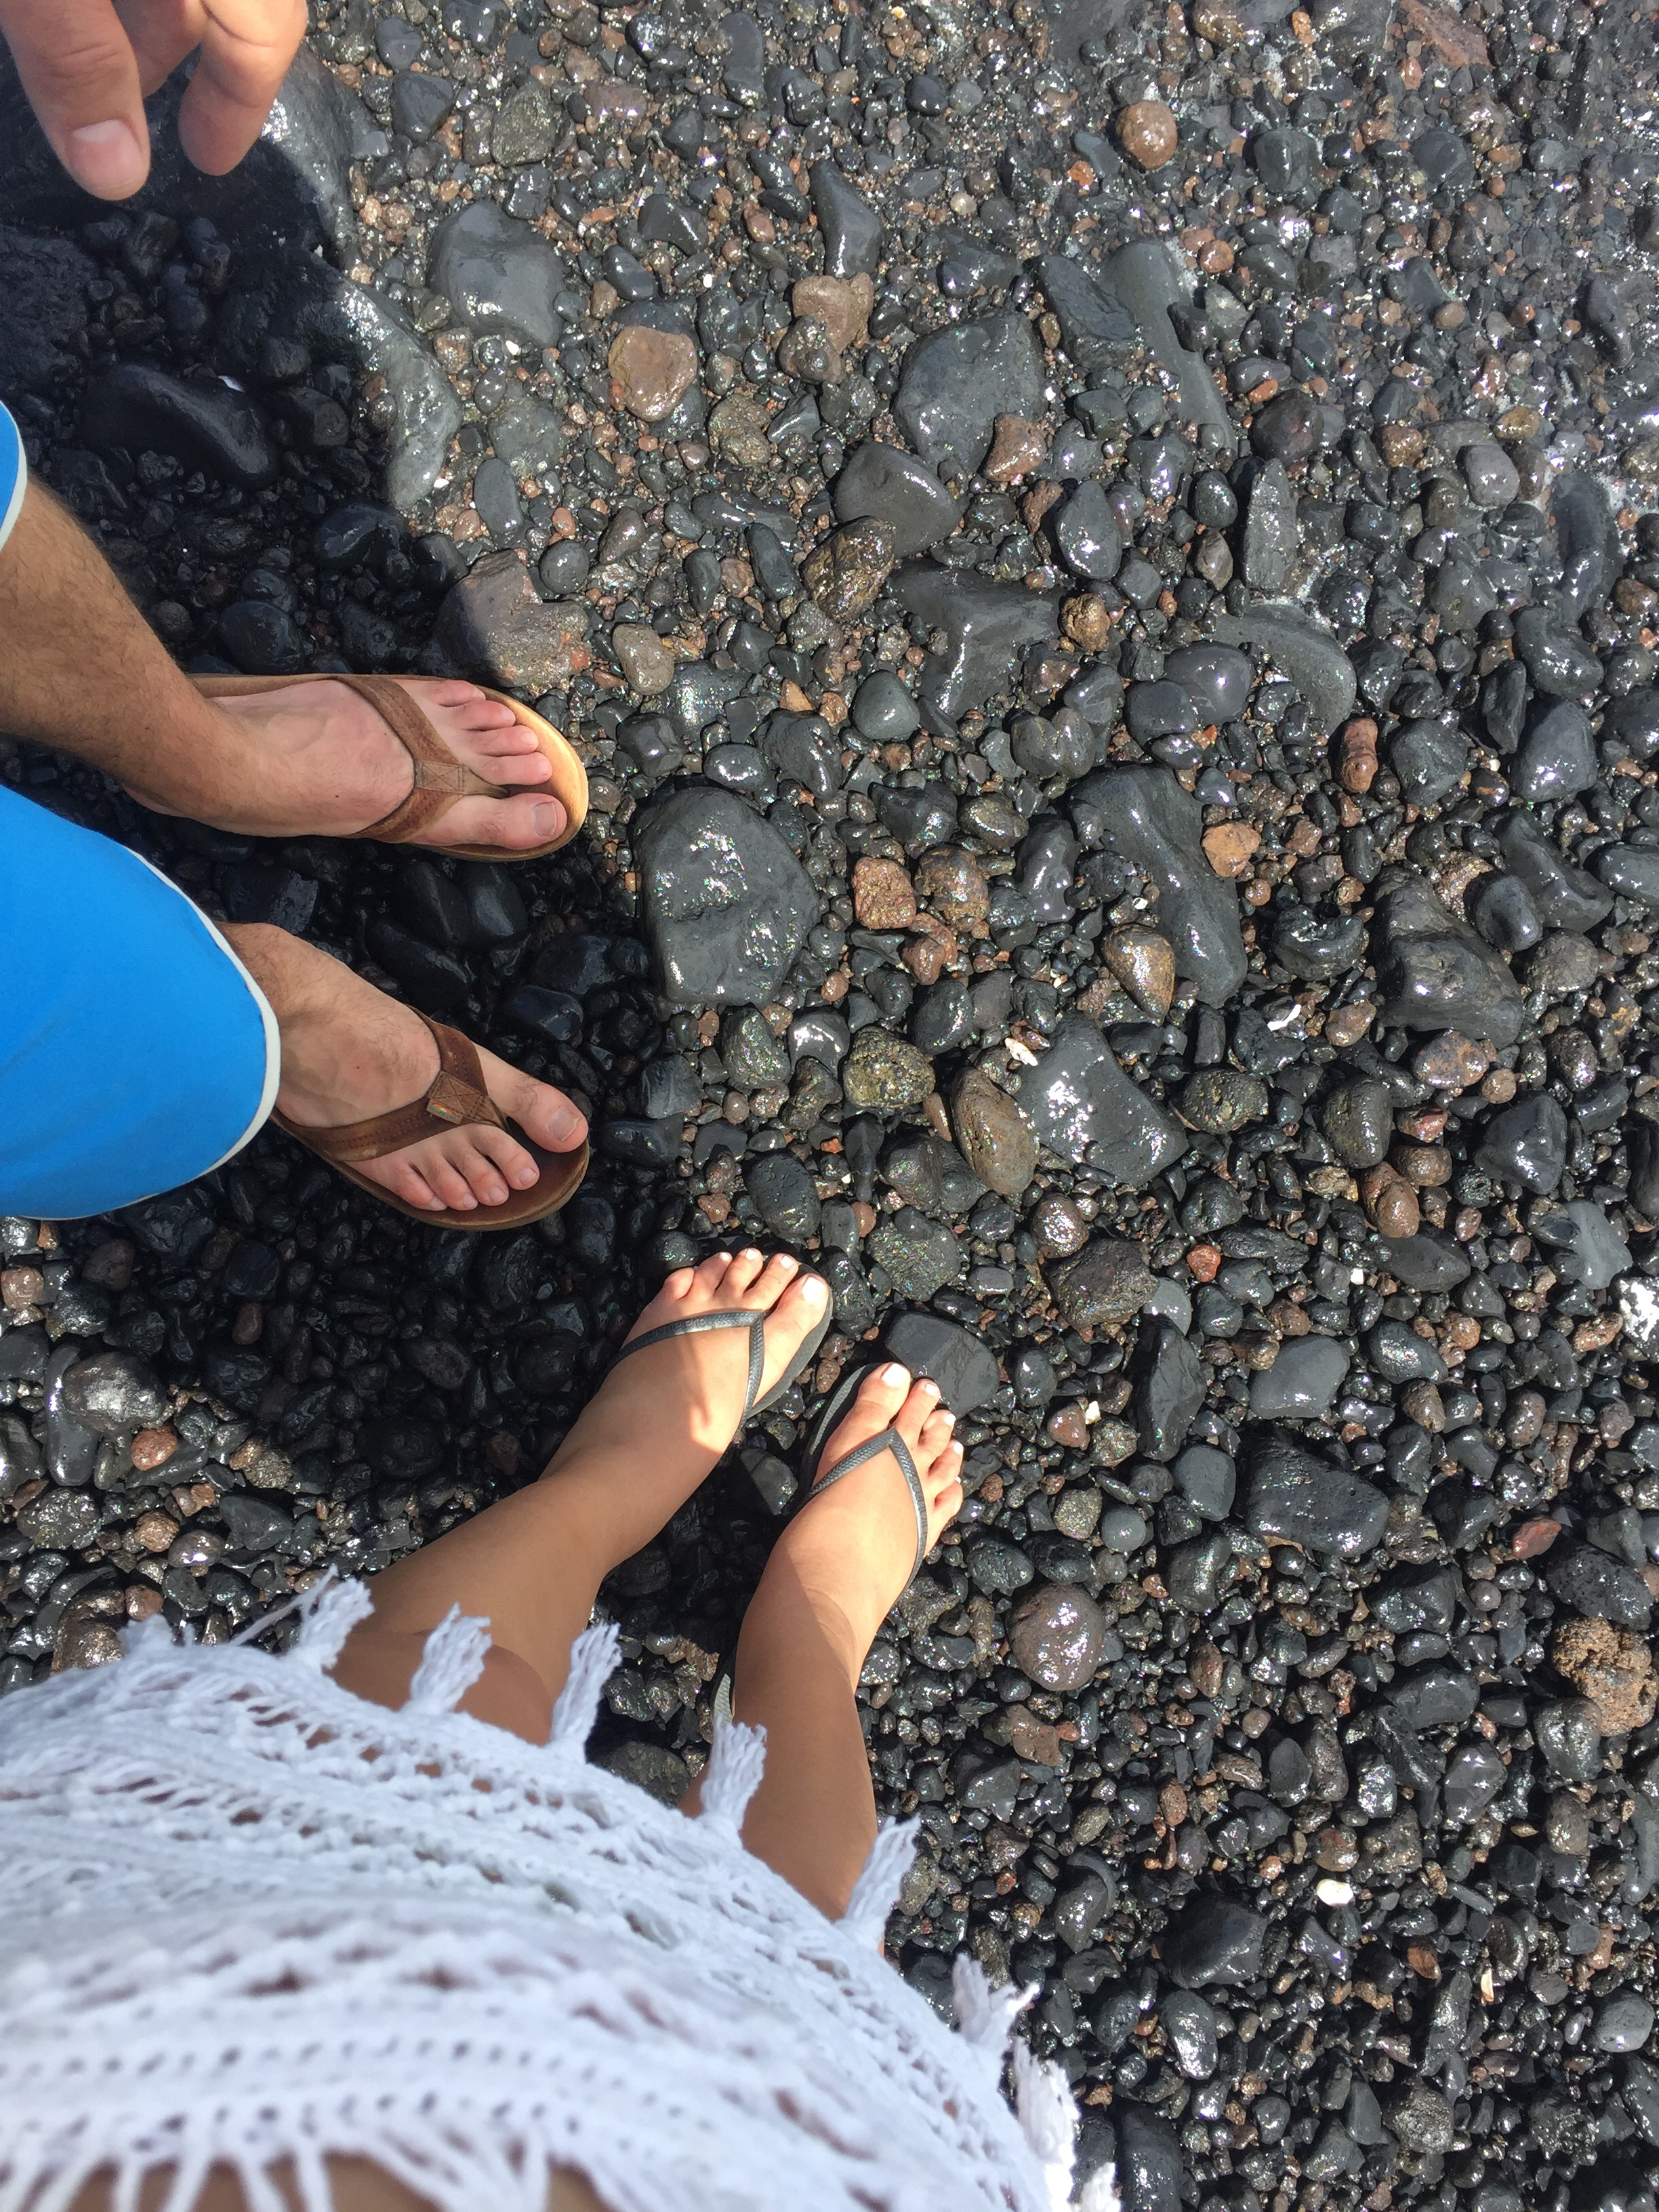 While some of it is black sand, it should probably be called Black Pebble Beach!